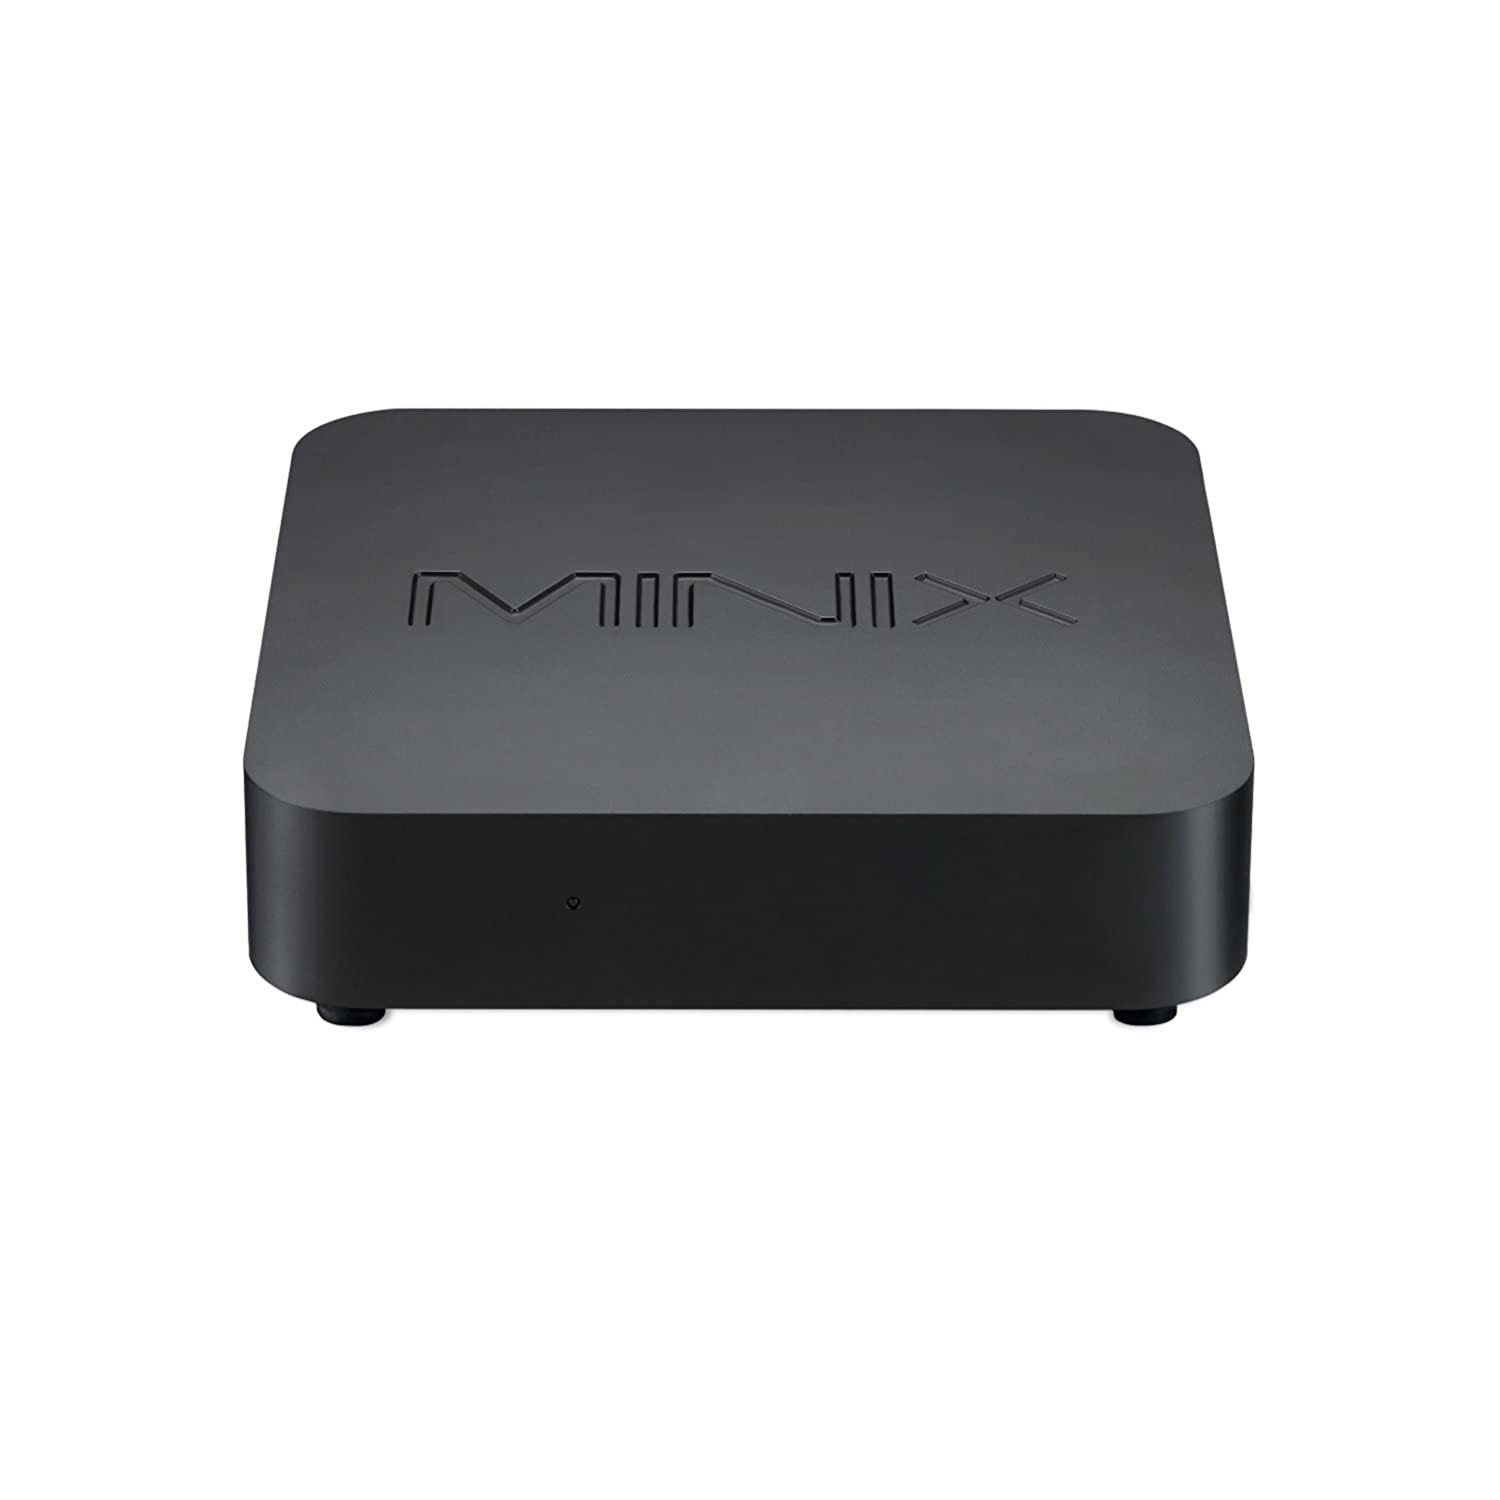 MINIX NEO N42C-4, Mini PC Intel Pentium avec Windows 10 Pro (64 bits) [4GB/32GB/É volutif/Dual-Band Wi-Fi/Gigabit Ethernet/4K @ 60Hz/Triple Display/USB-C].Vendu directement par MINIX Technology Limited